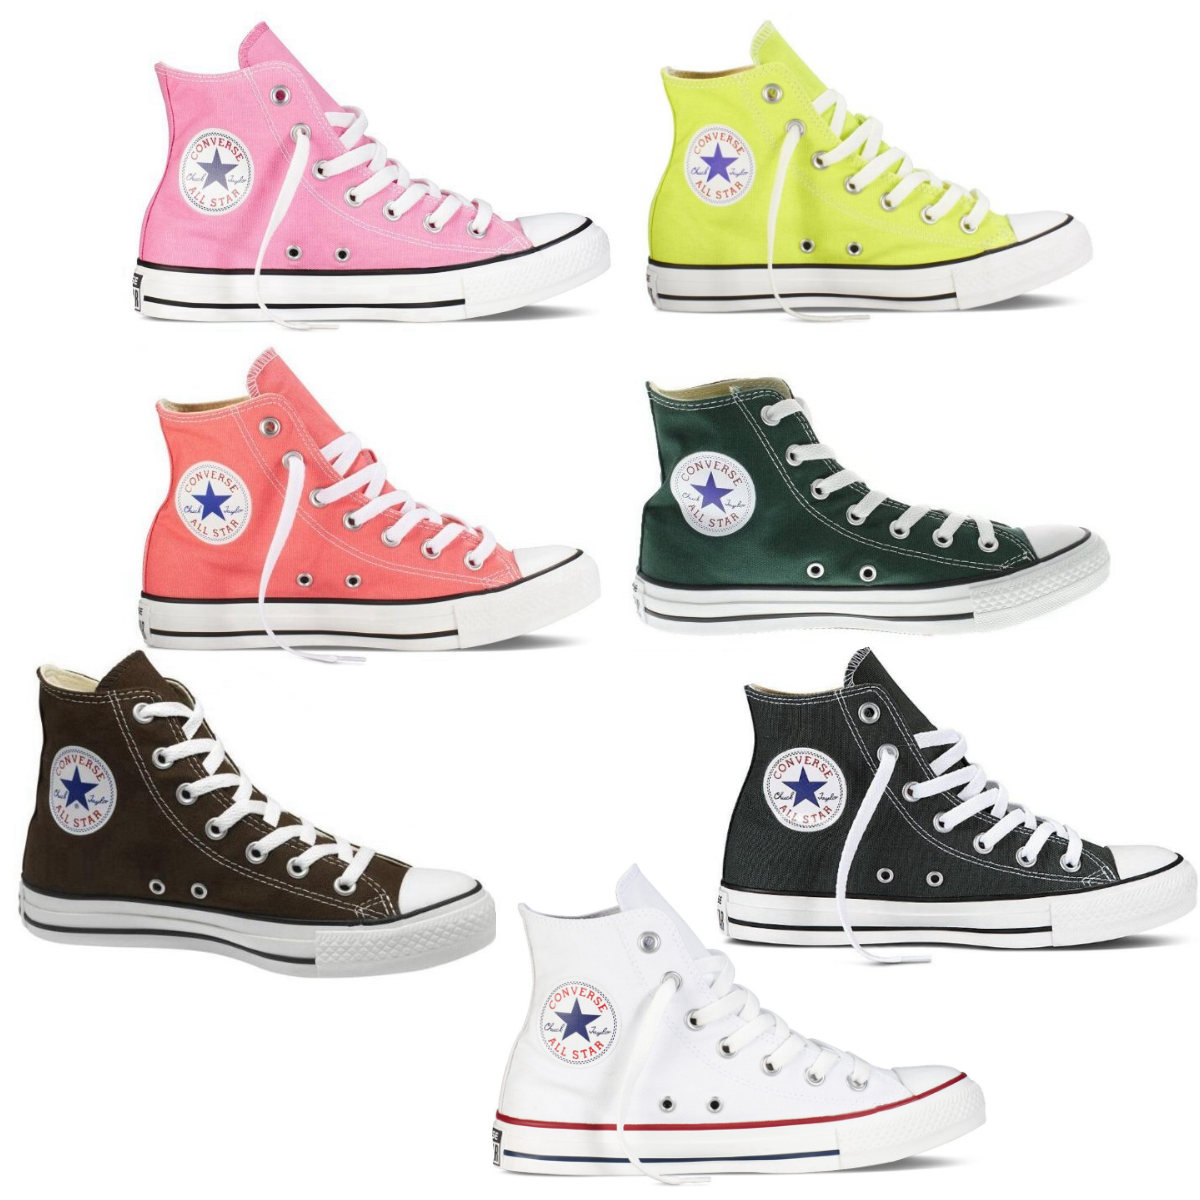 converse chucks all star hi schuhe sneaker canvas high top damen herren ebay. Black Bedroom Furniture Sets. Home Design Ideas